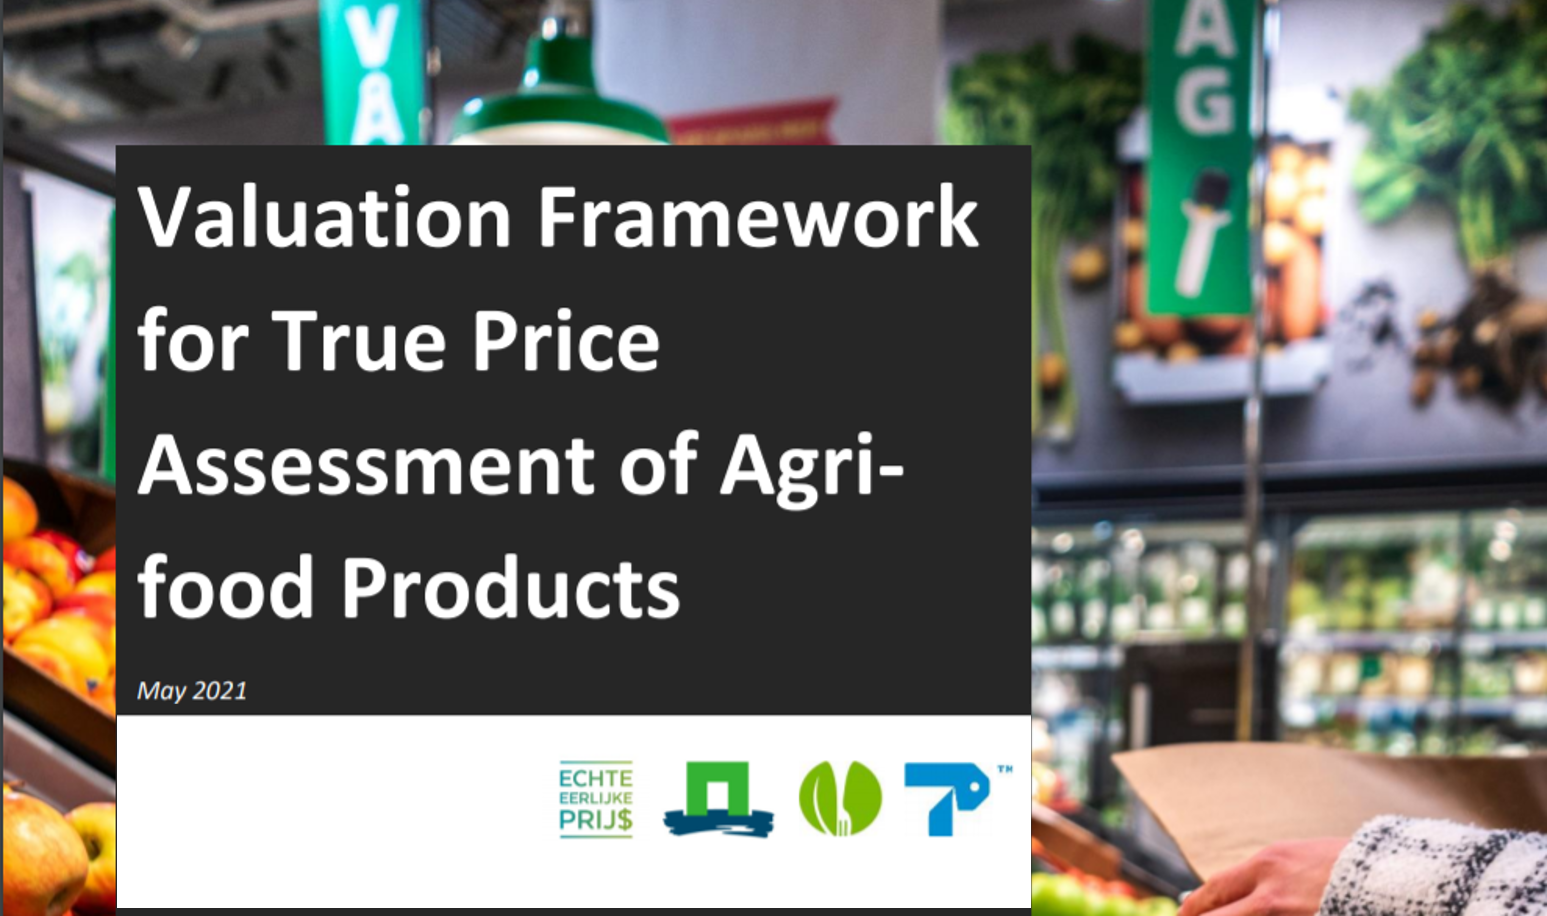 Valuation Framework for True Price Assessment of Agrifood Products